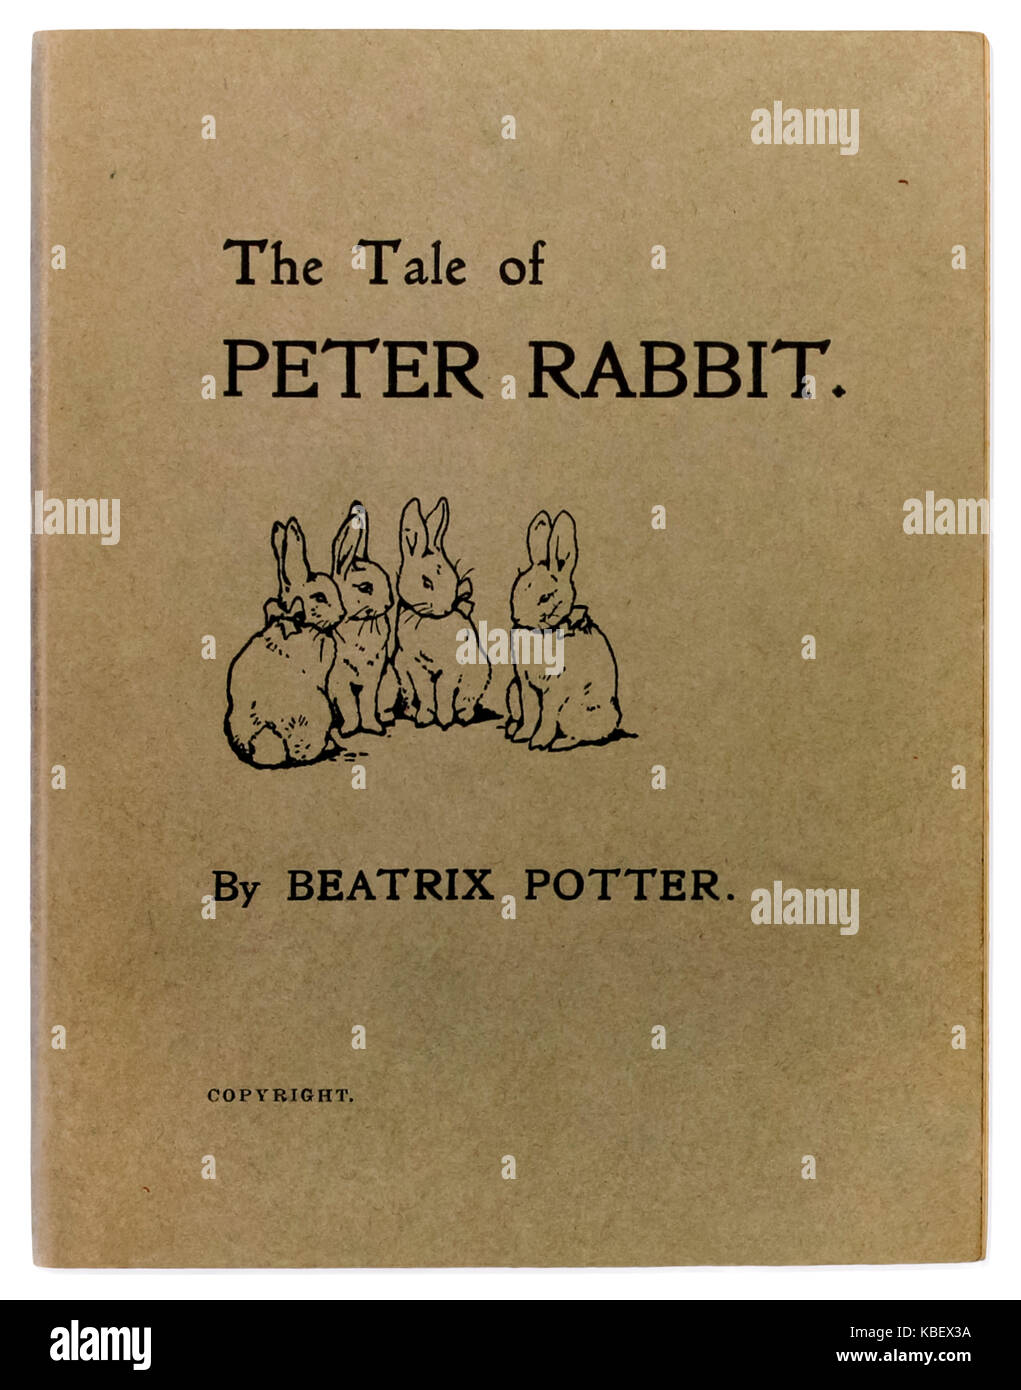 'The Tale of Peter Rabbit' by Beatrix Potter (1866-1943). Photograph of front cover of one of 250 copies privately - Stock Image